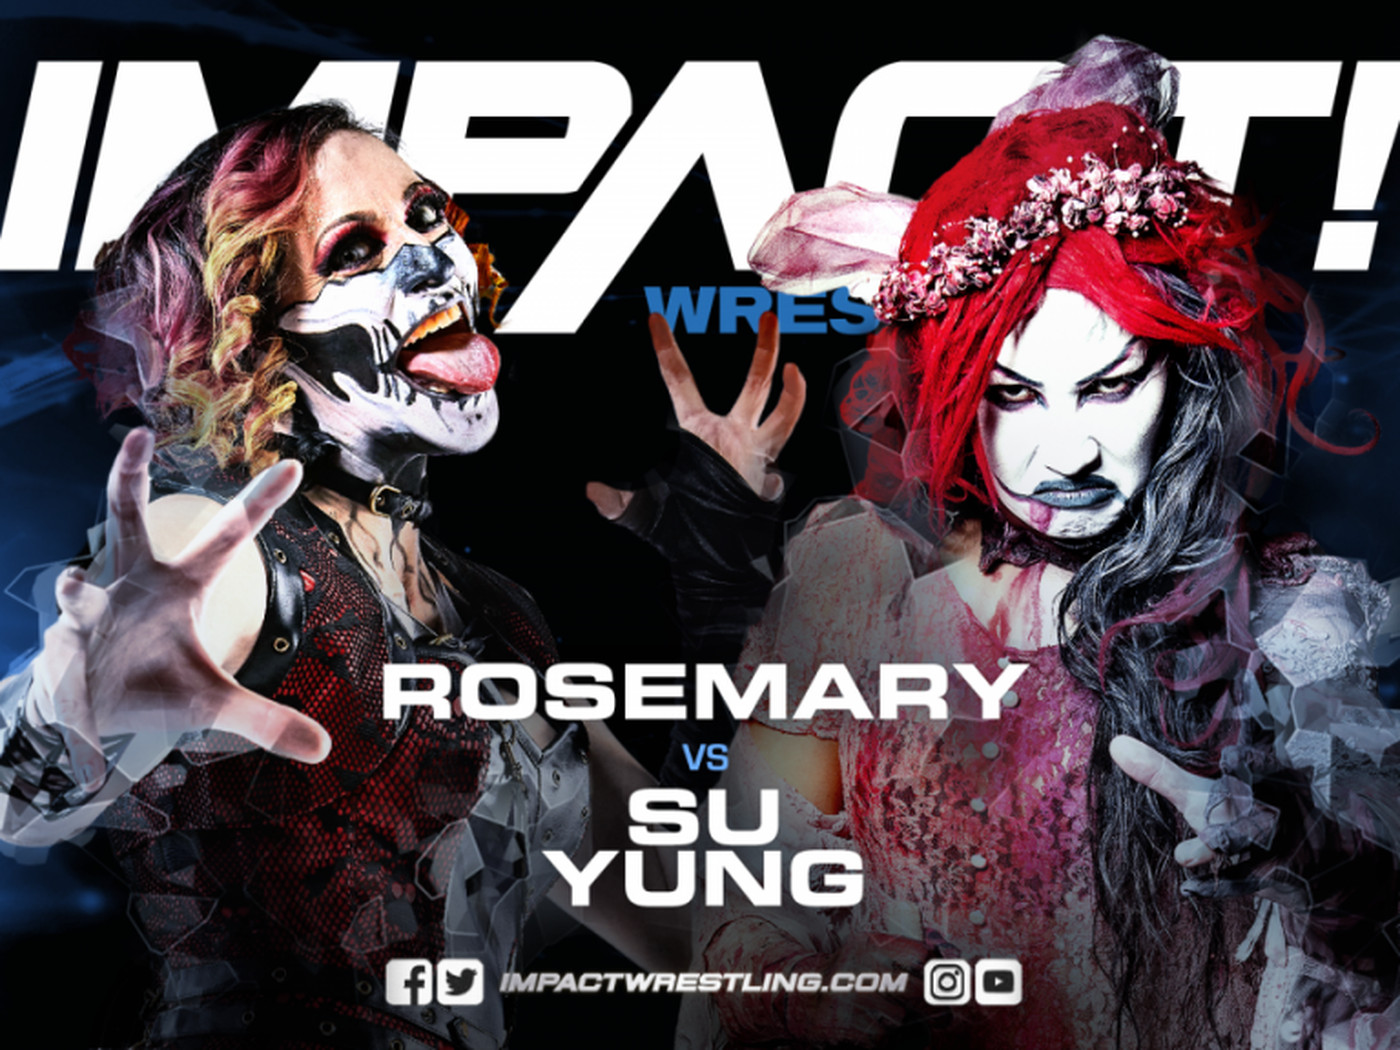 impact wrestling results, live blog: rosemary vs. su yung - cageside